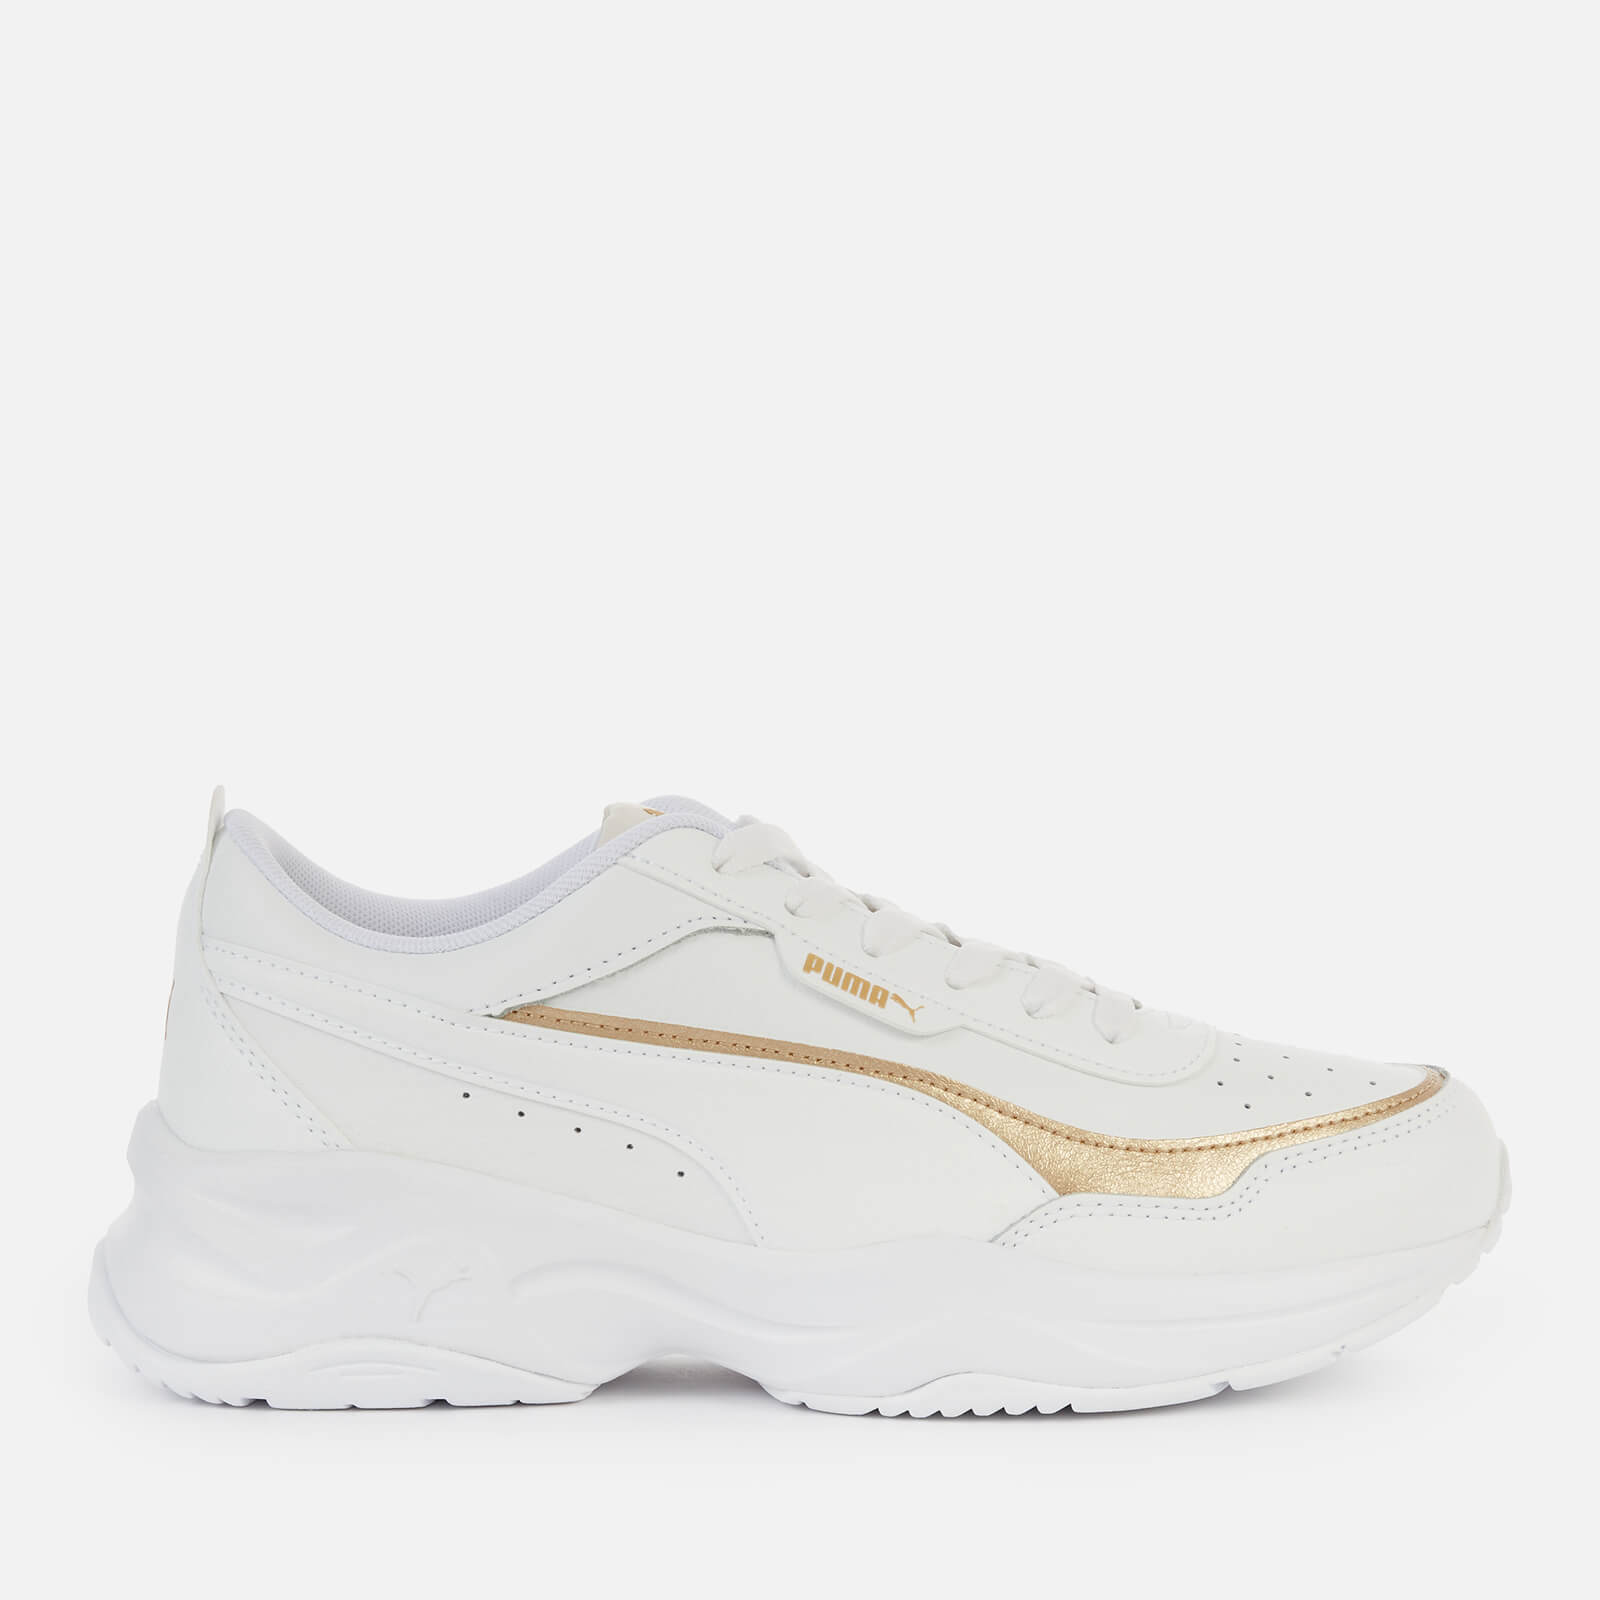 Click to view product details and reviews for Puma Womens Cilia Mode Lux Trainers Puma White Puma White Puma Team Gold Uk 6.